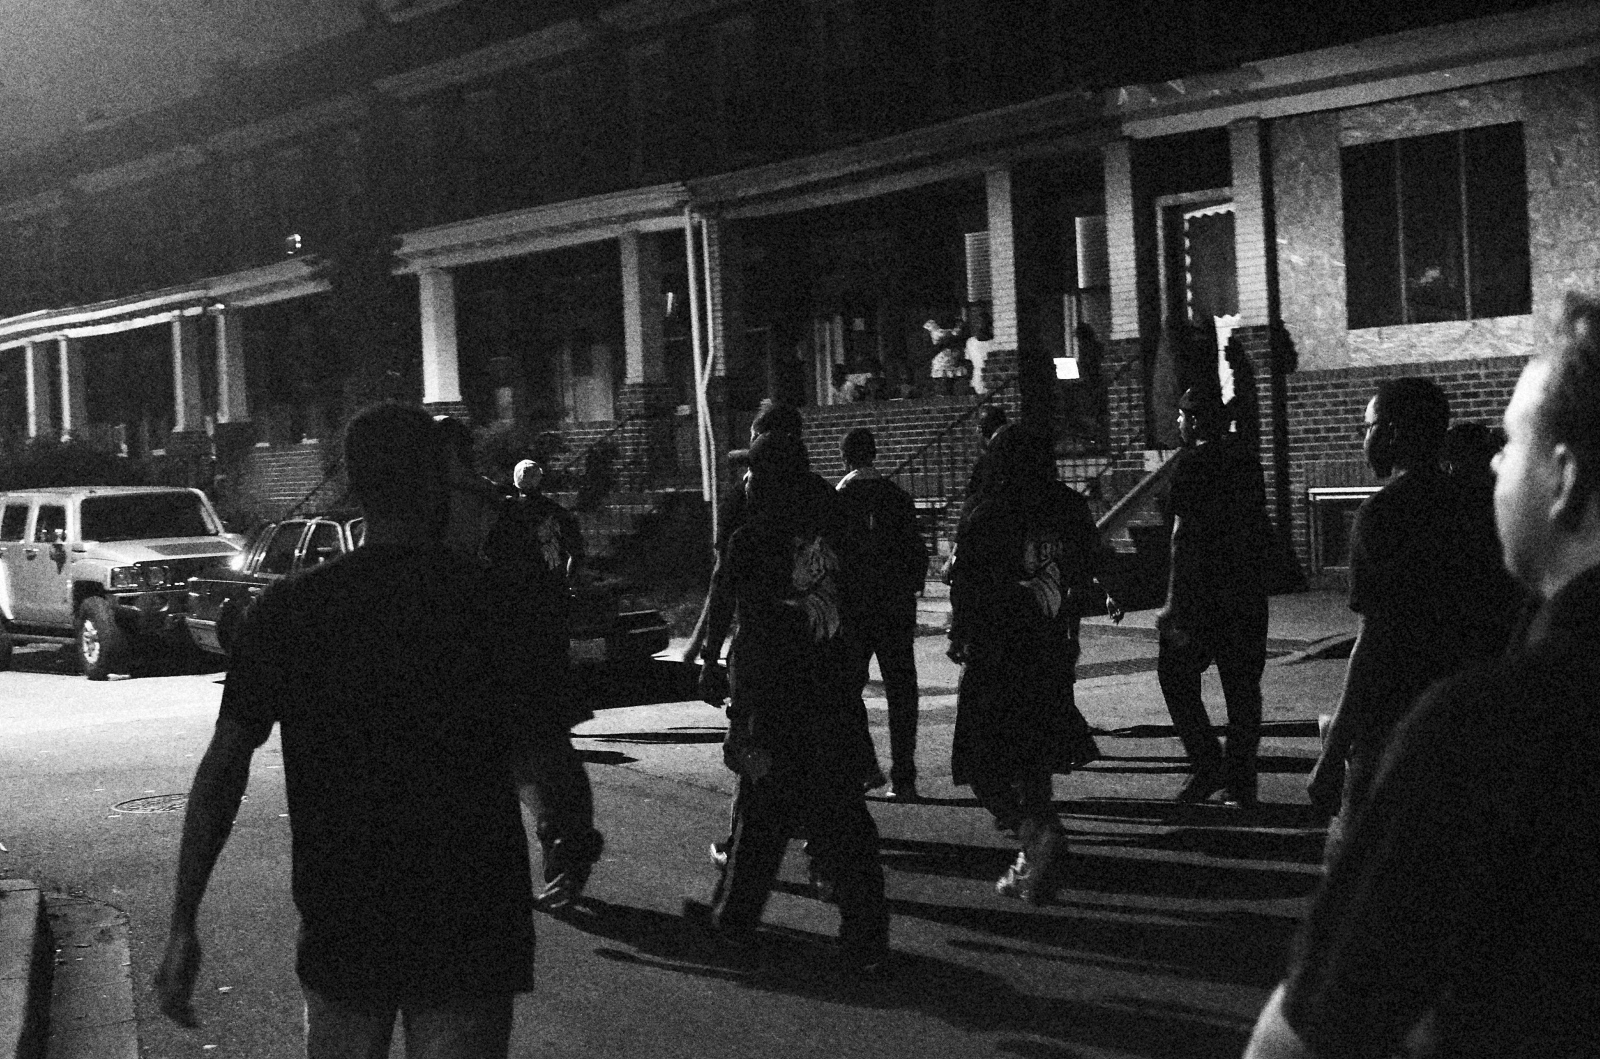 In response to the spike in homicides in 2013, Baltimore City Councilman Brandon Scott and activist Munir Bahar organized the 300 Man March, whiich encouraged men of all ages to walk at night through some of Baltimore's most violent neighborhoods. Marchers walk through a neighborhood in East Baltimore on August 2, 2013.